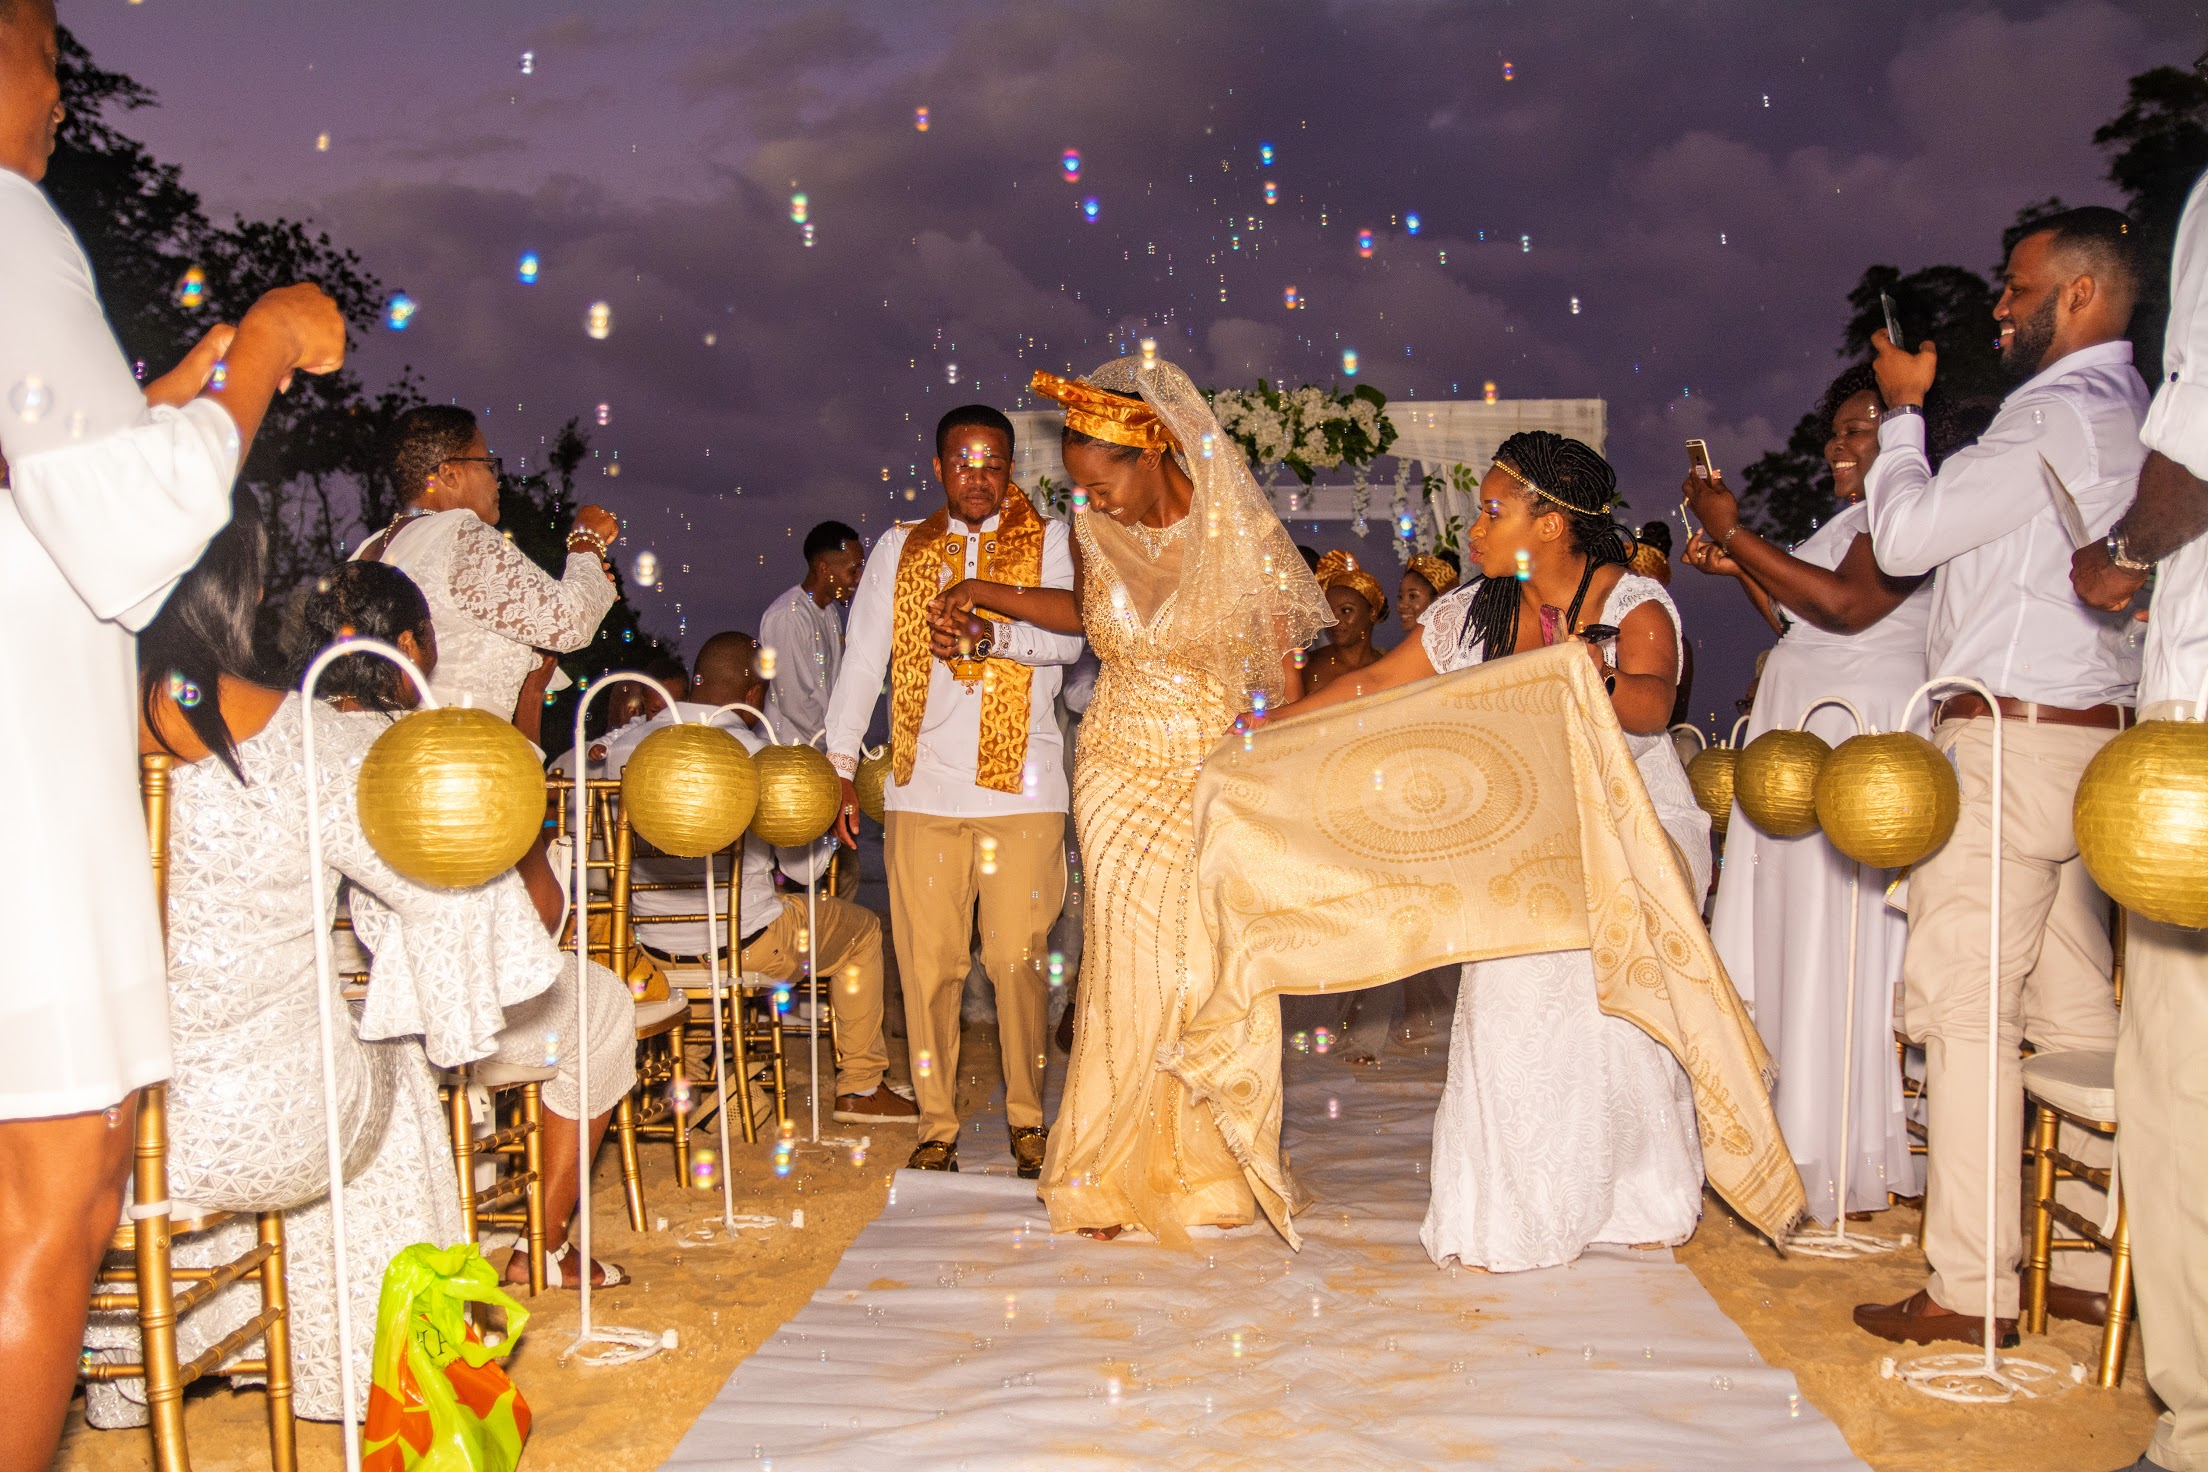 Debronique 🇯🇲 and Toni's 🇿🇼  Beautiful Beach Wedding in Jamaica